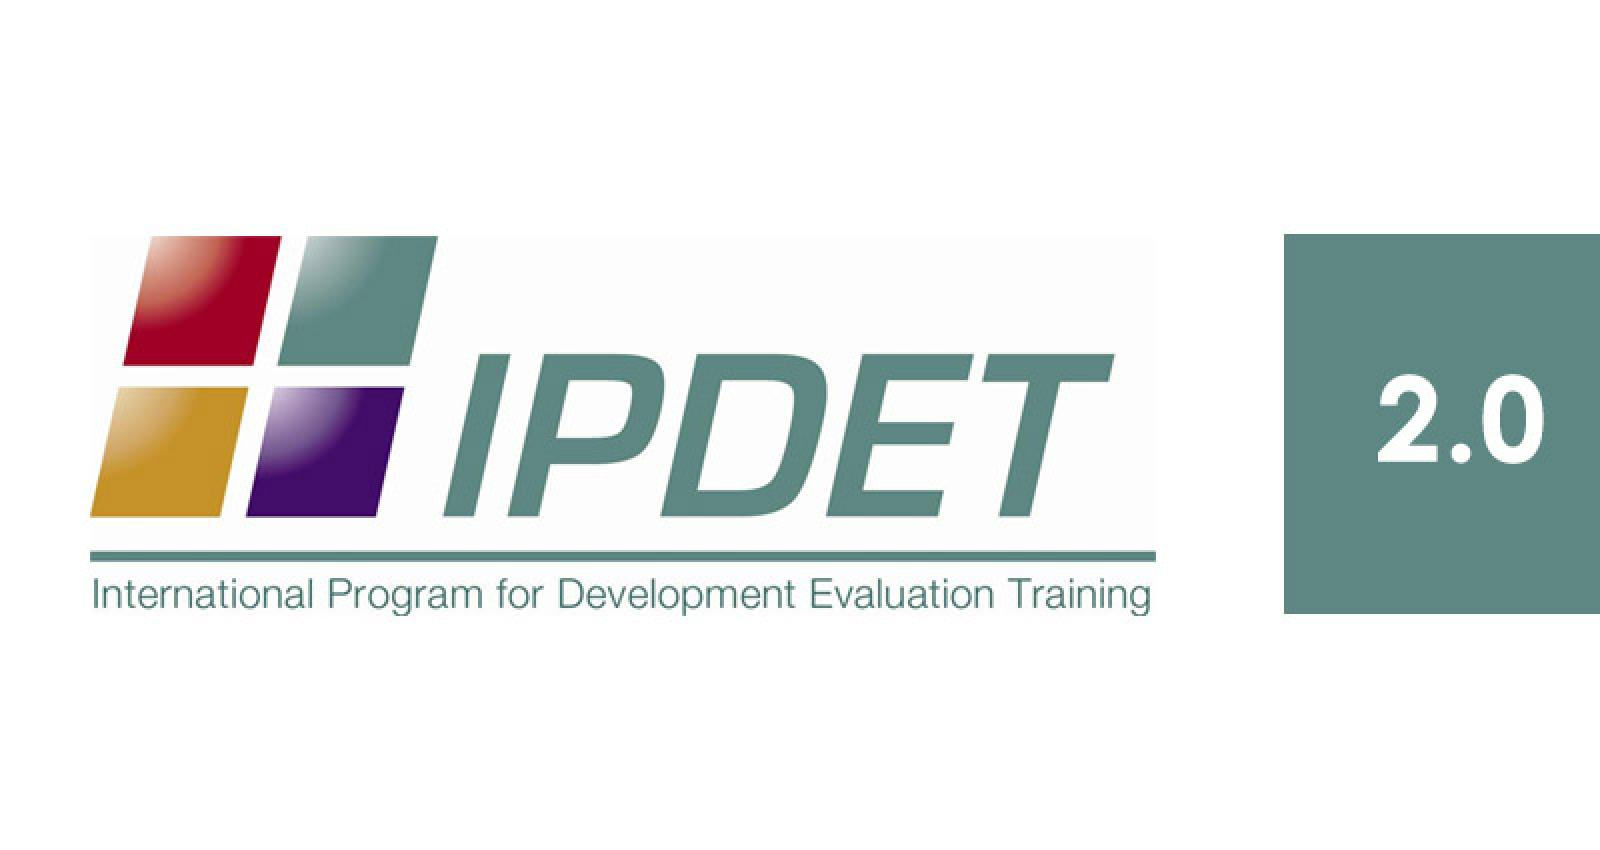 ipdet, ieg ipdet, international program for development evaluation training